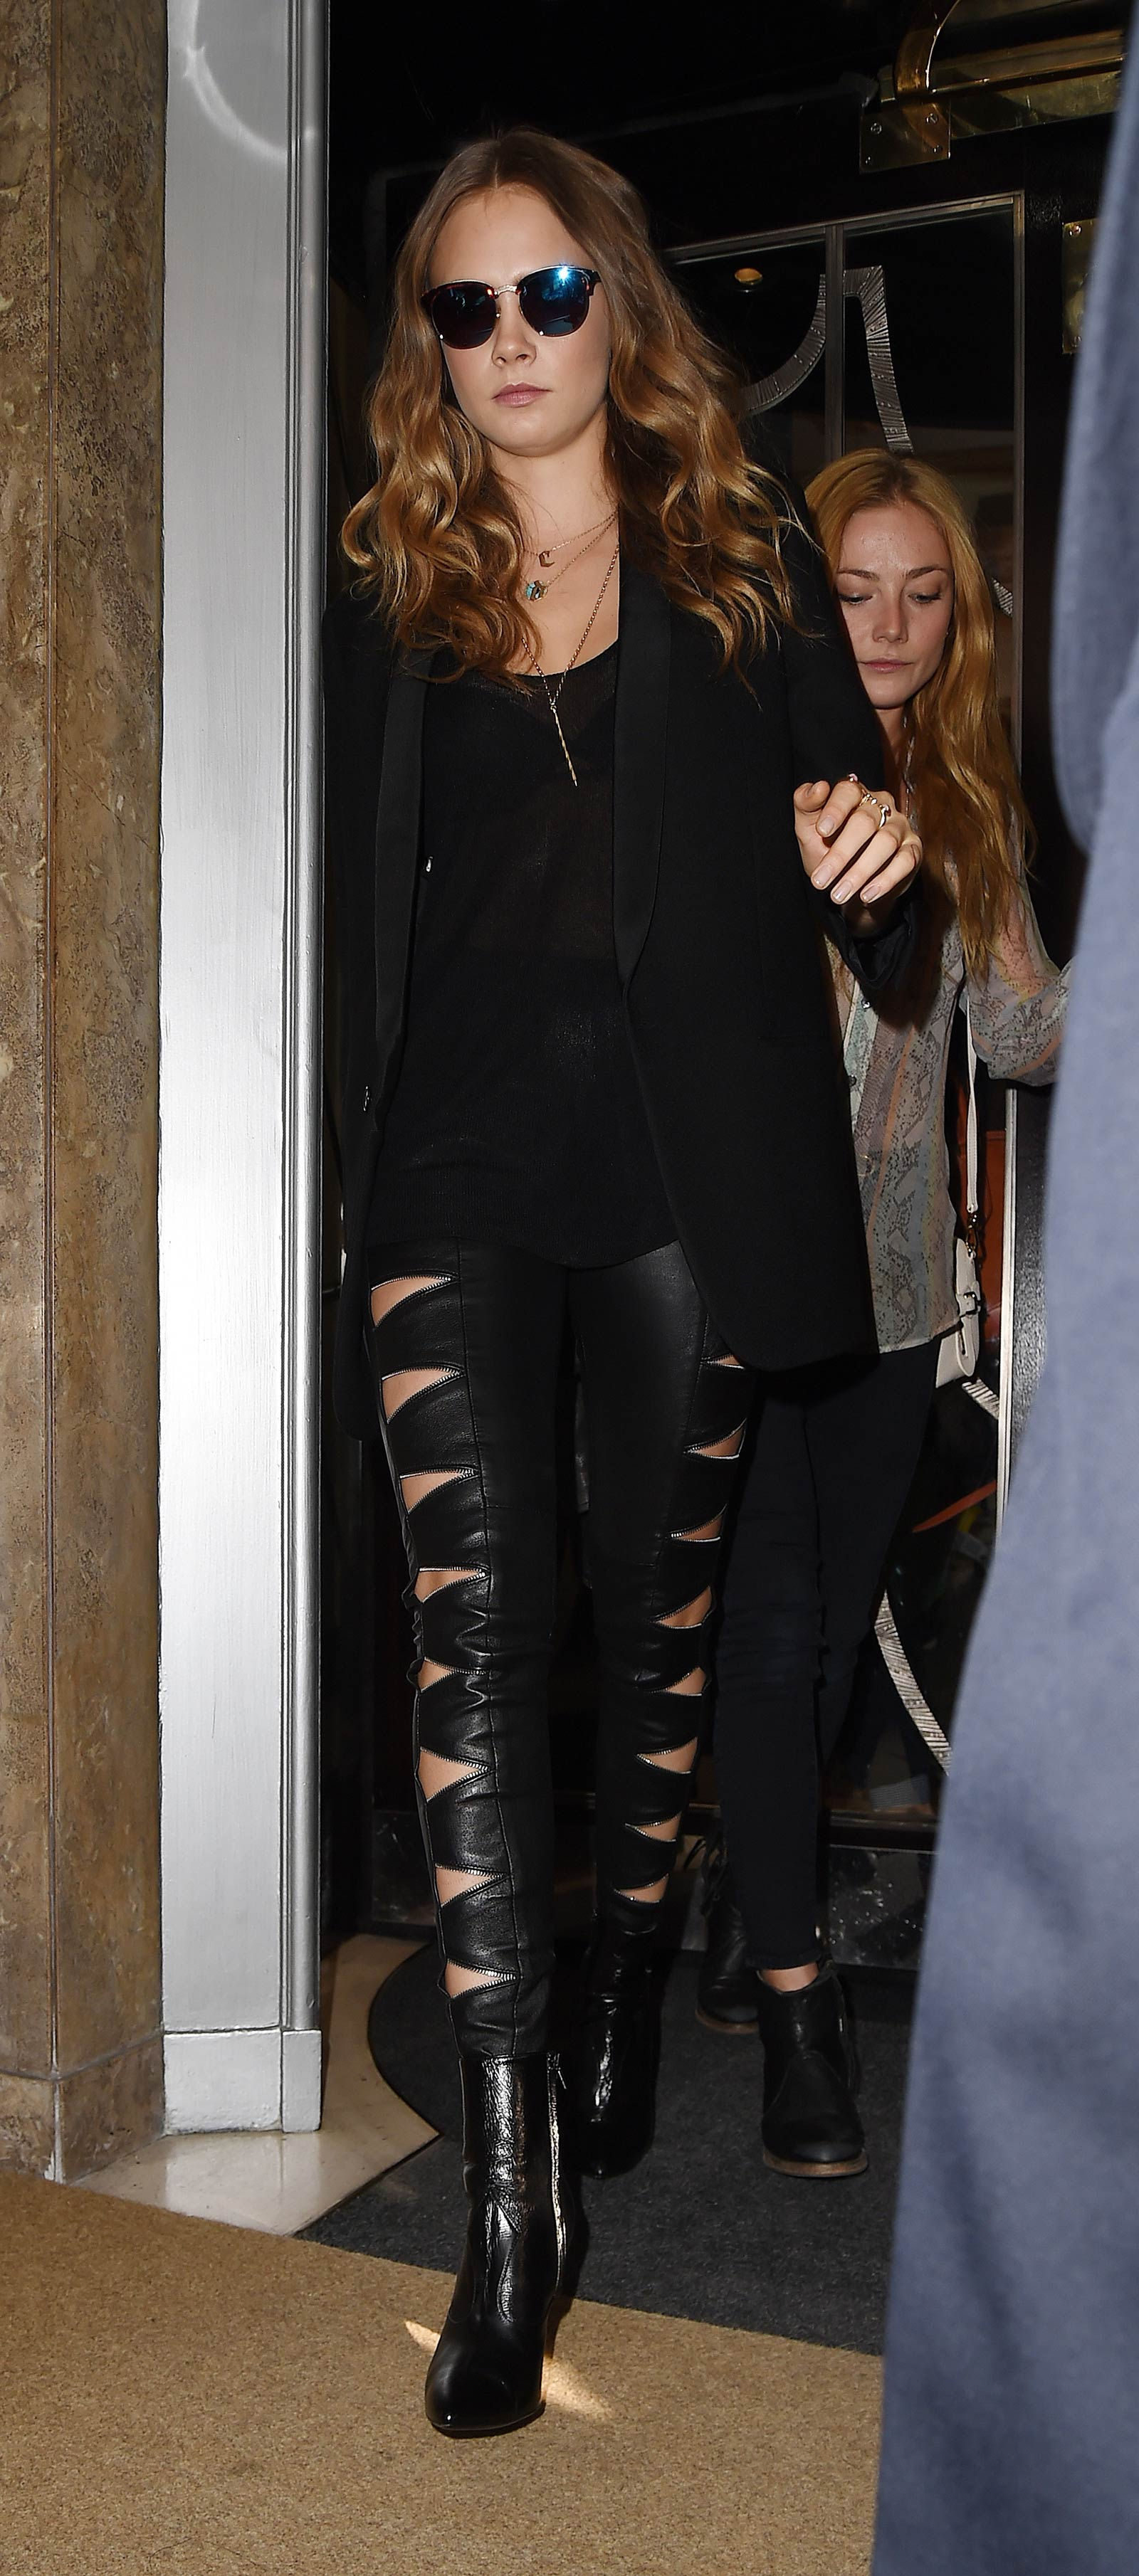 Cara Delevingne leaving her hotel in London